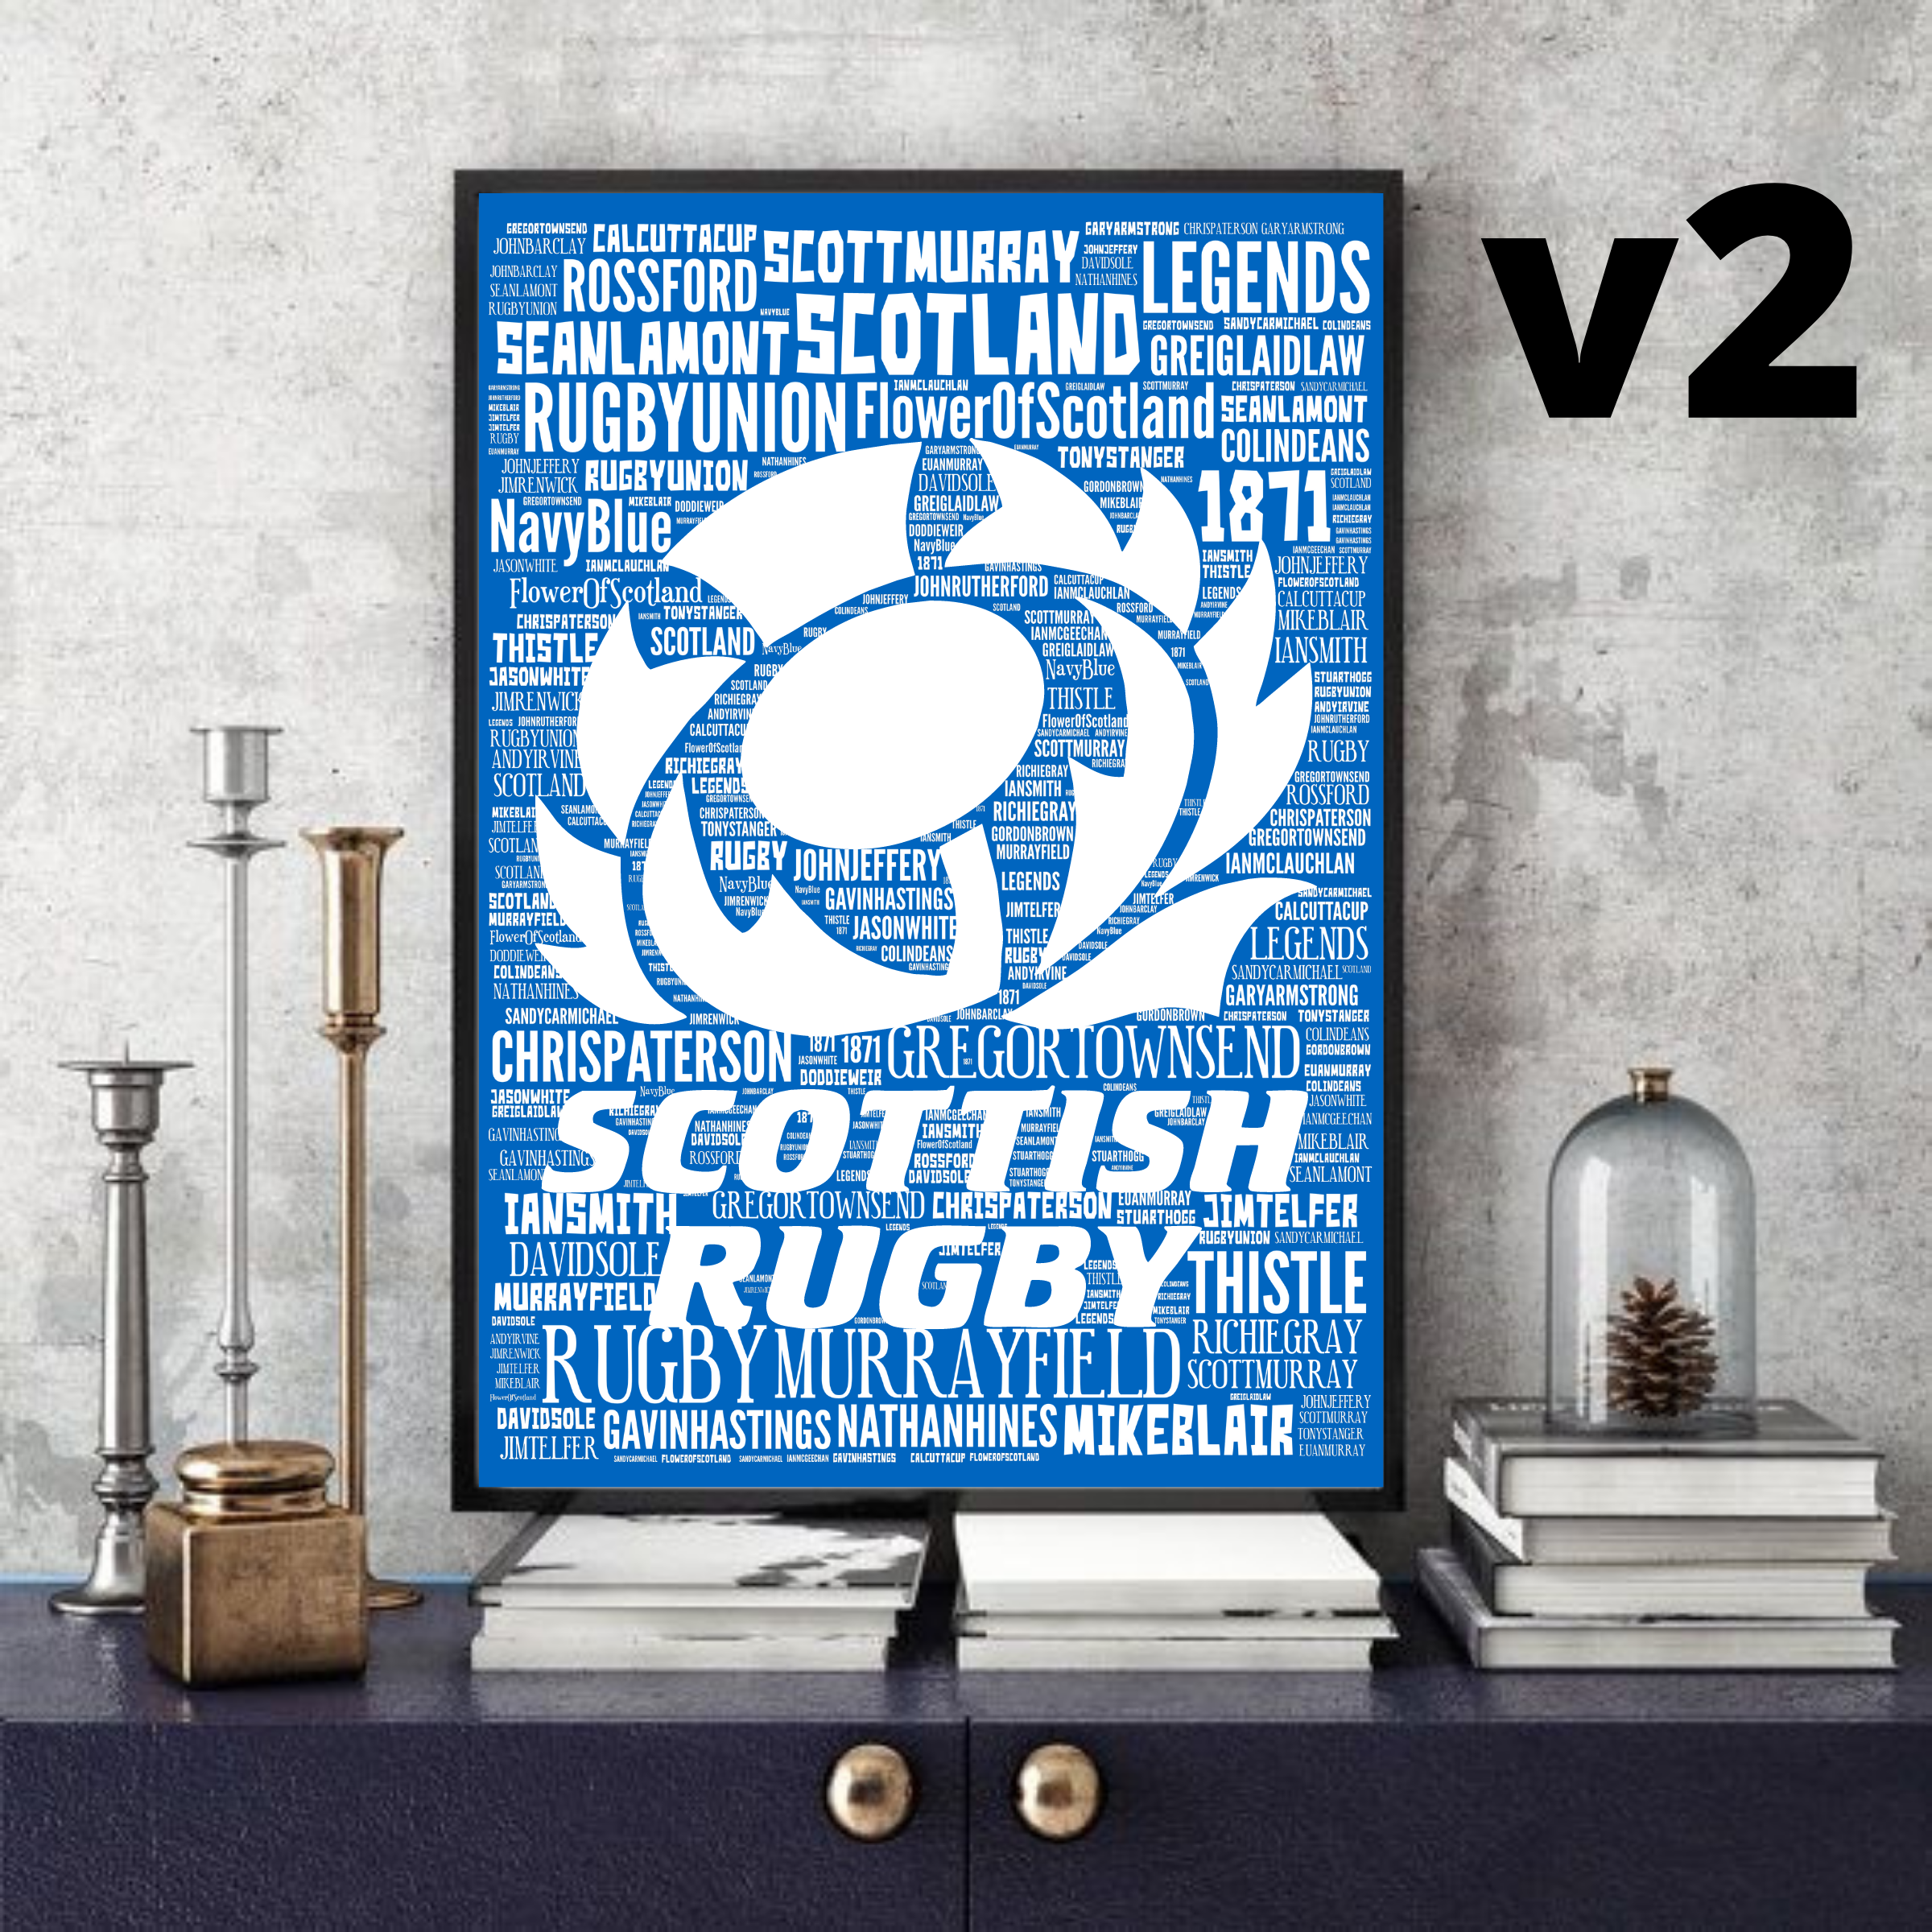 SCOTLAND RUGBY Legends (Multi options) - Word Art Collectable/Gift/Memorabilia